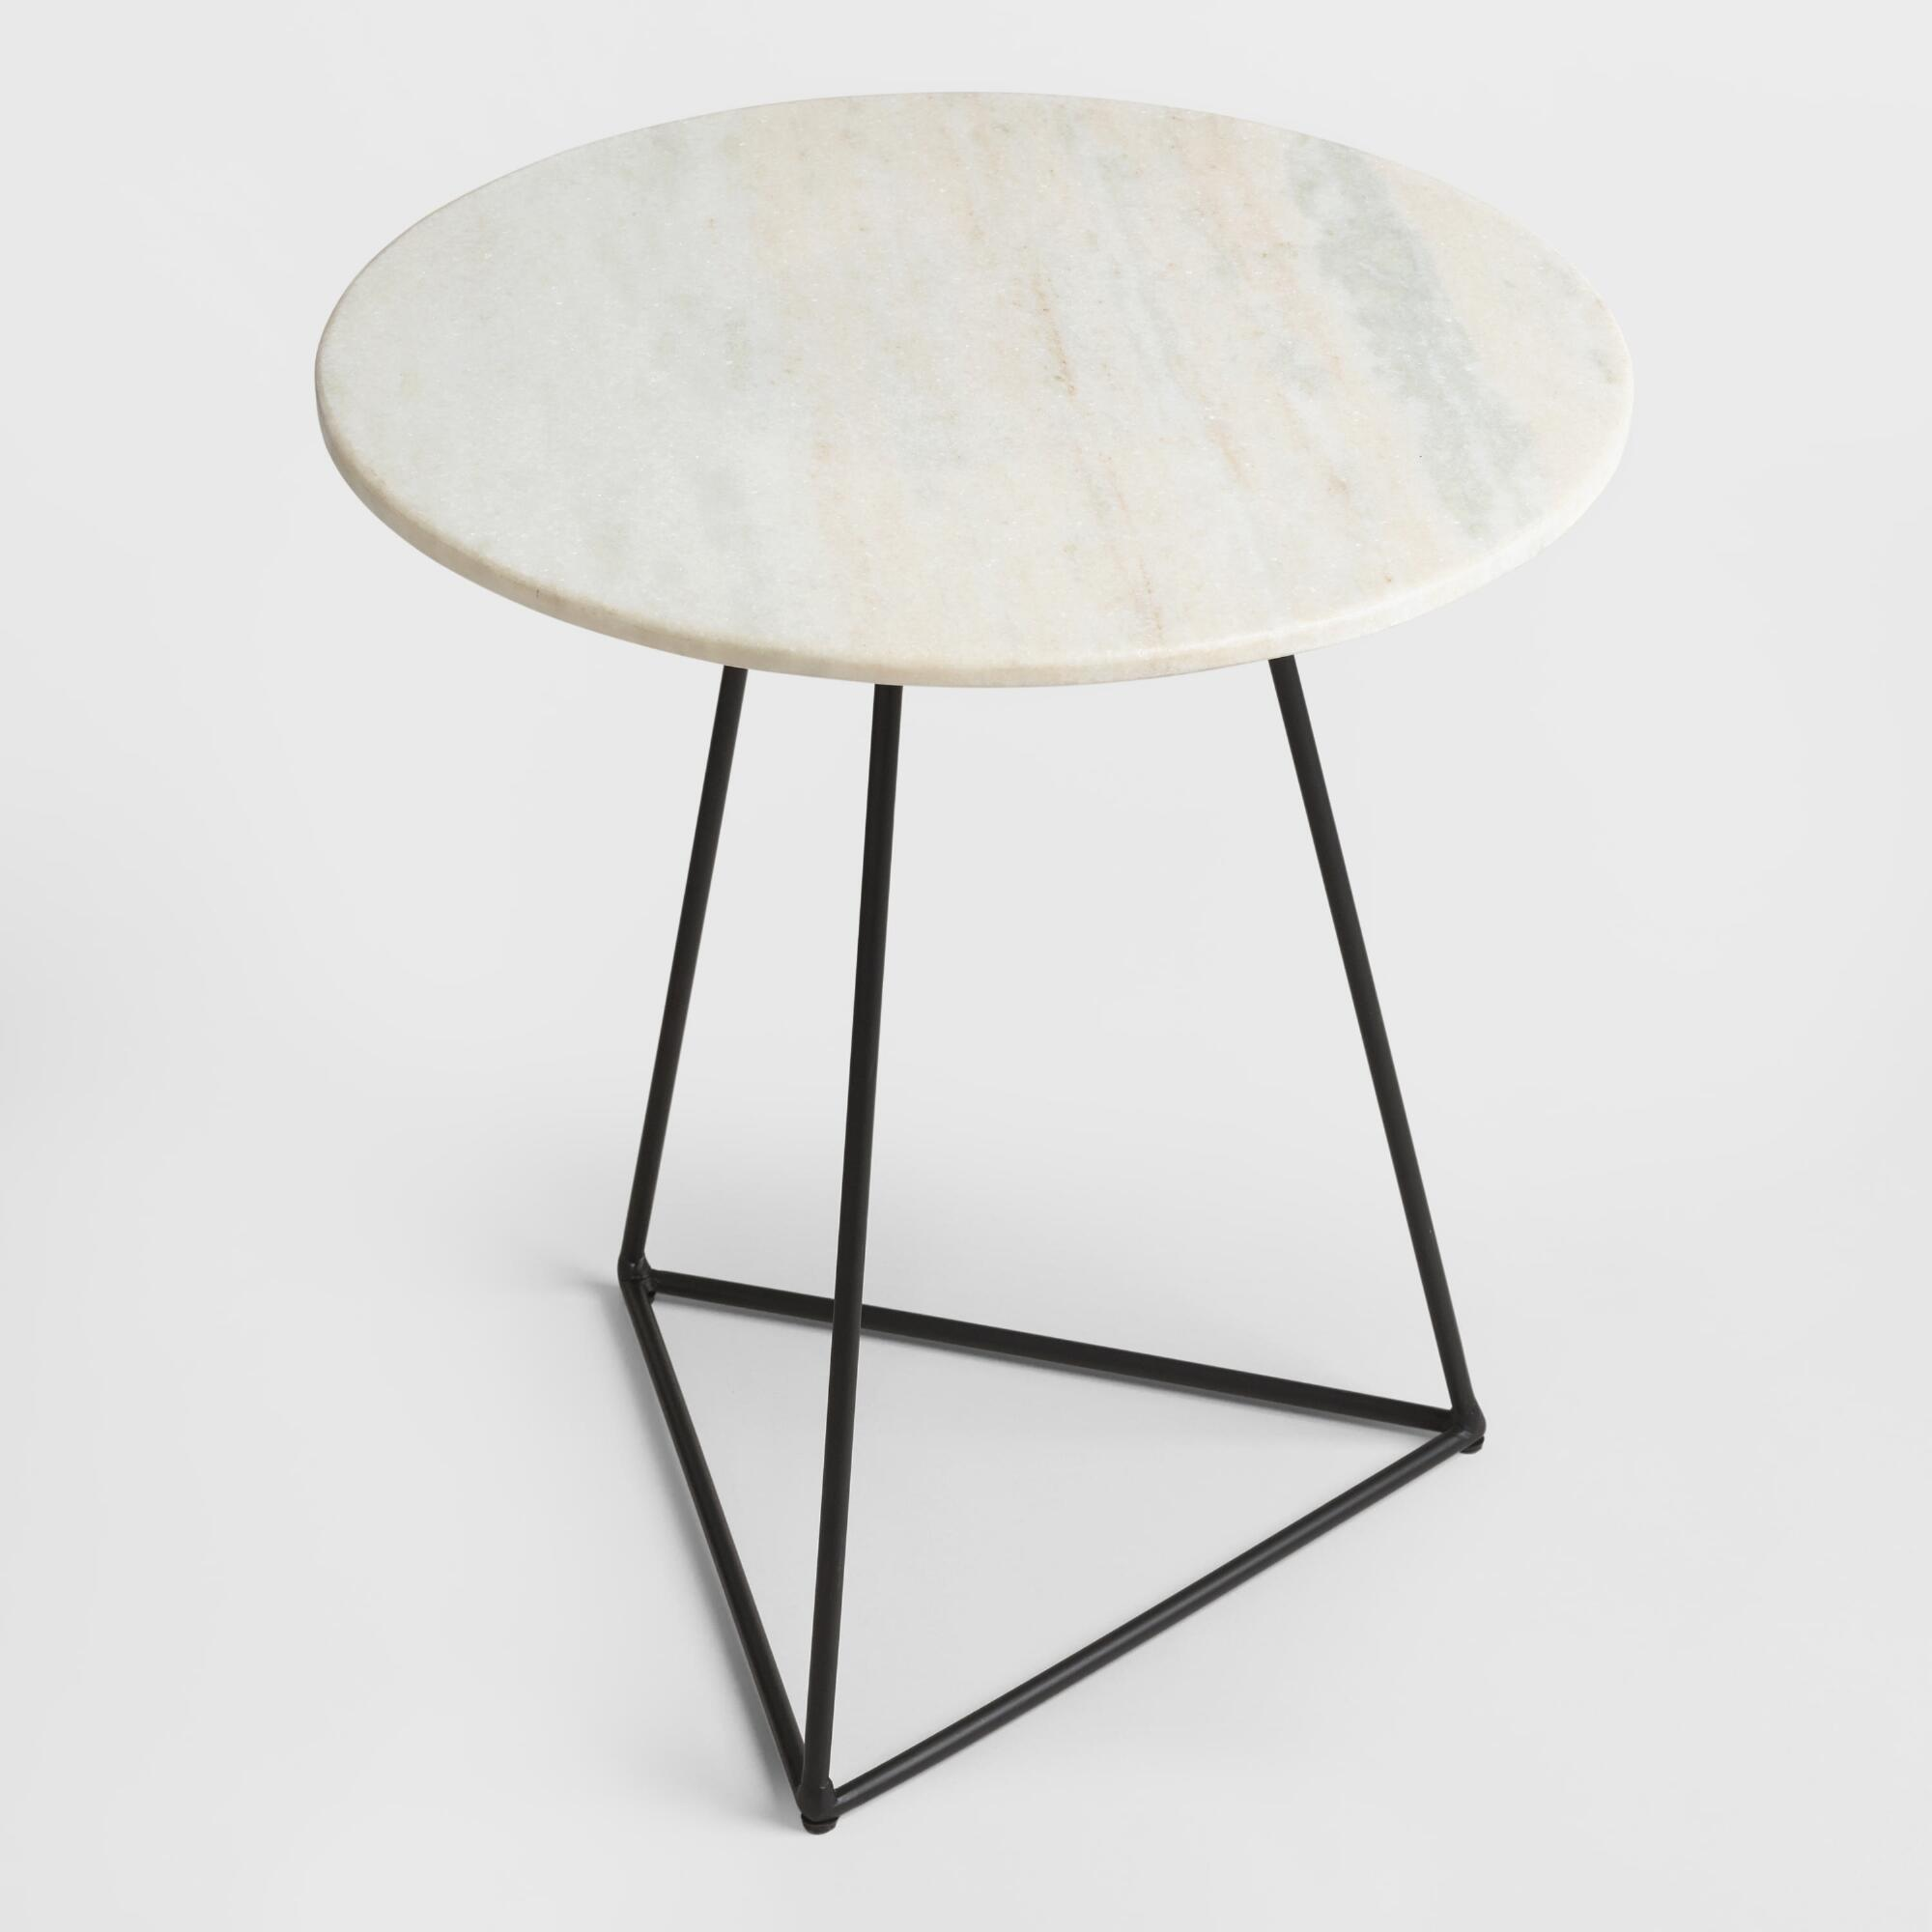 white marble and metal round accent table world market iipsrv fcgi drum style end tables master built smoker small outdoor home goods living room interior design shoe storage high